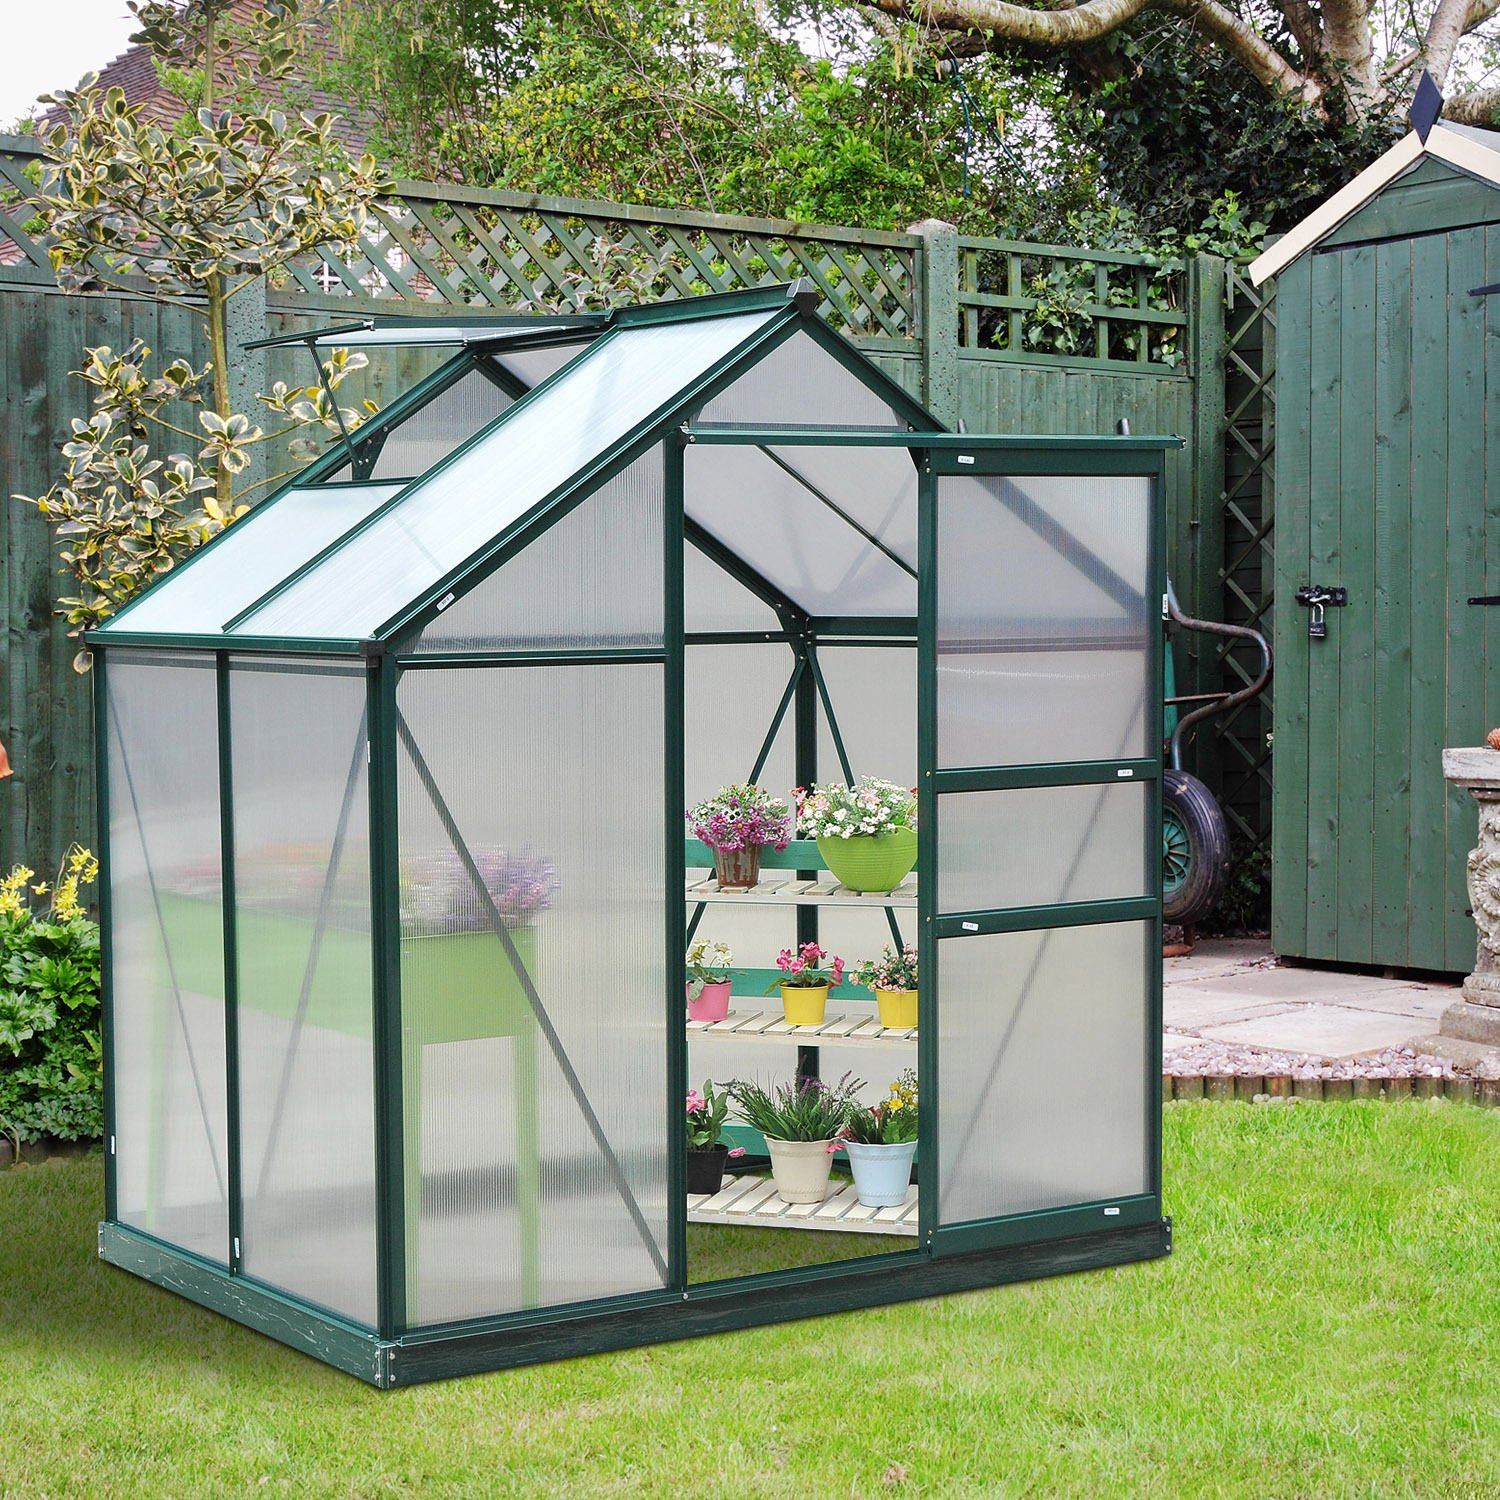 6ft x 4ft Outsunny Clear Polycarbonate Greenhouse Large Walk-In Green House Garden Plants Grow Galvanized Base Aluminium Frame w  Slide Door (6ft x 4ft)